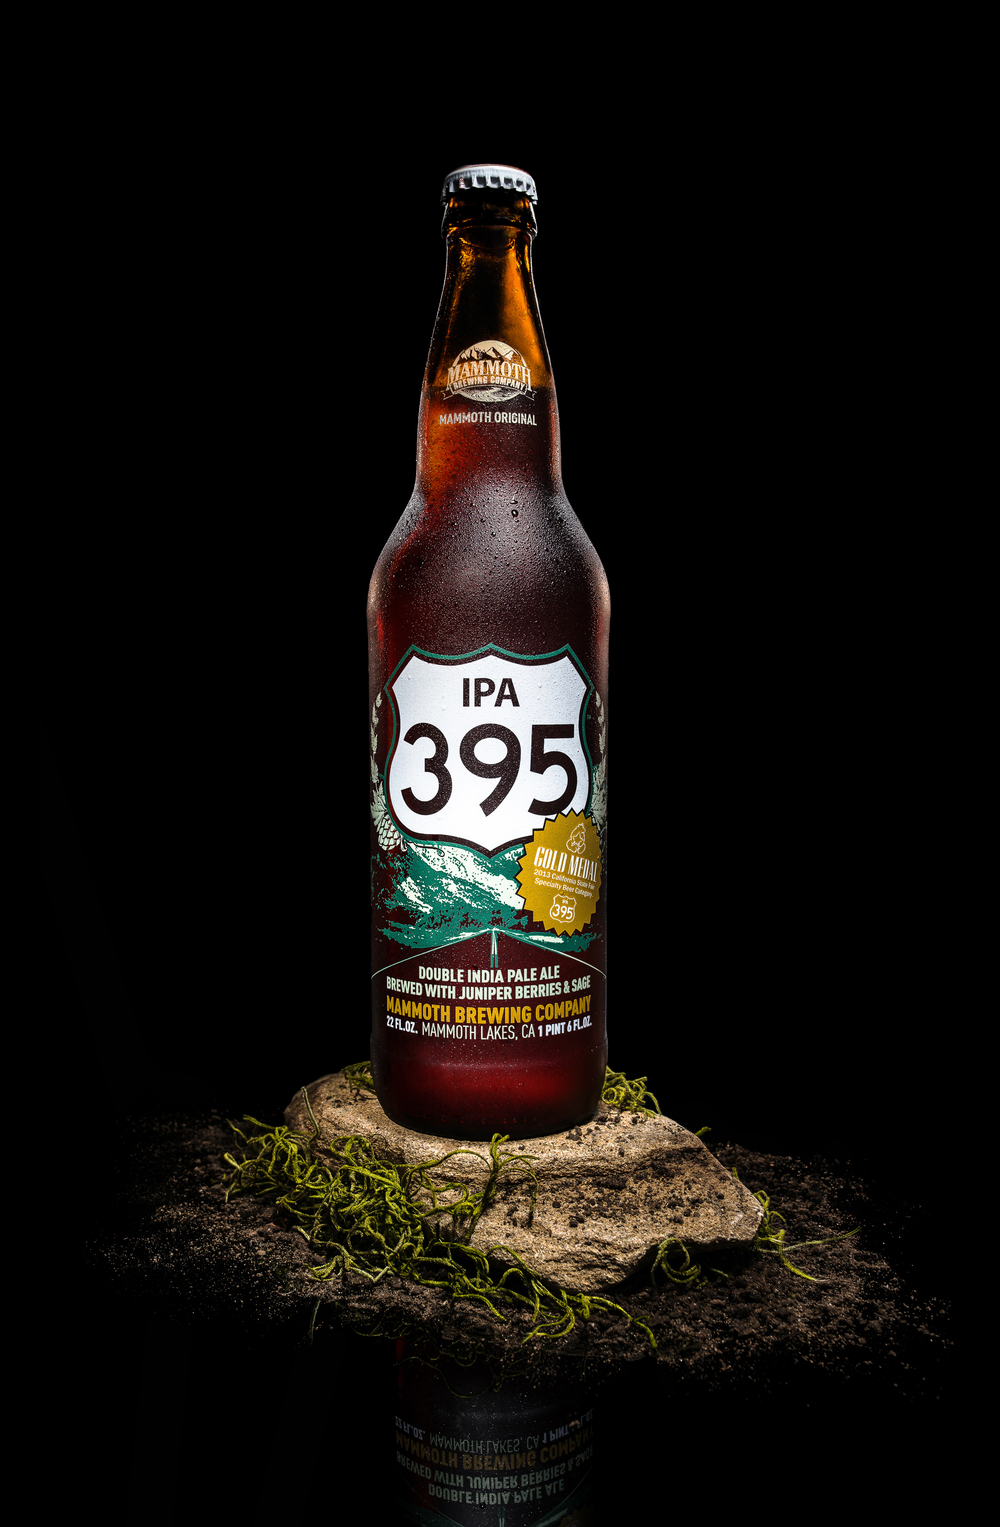 Mammoth-Brewery-IPA-395-Final.jpg